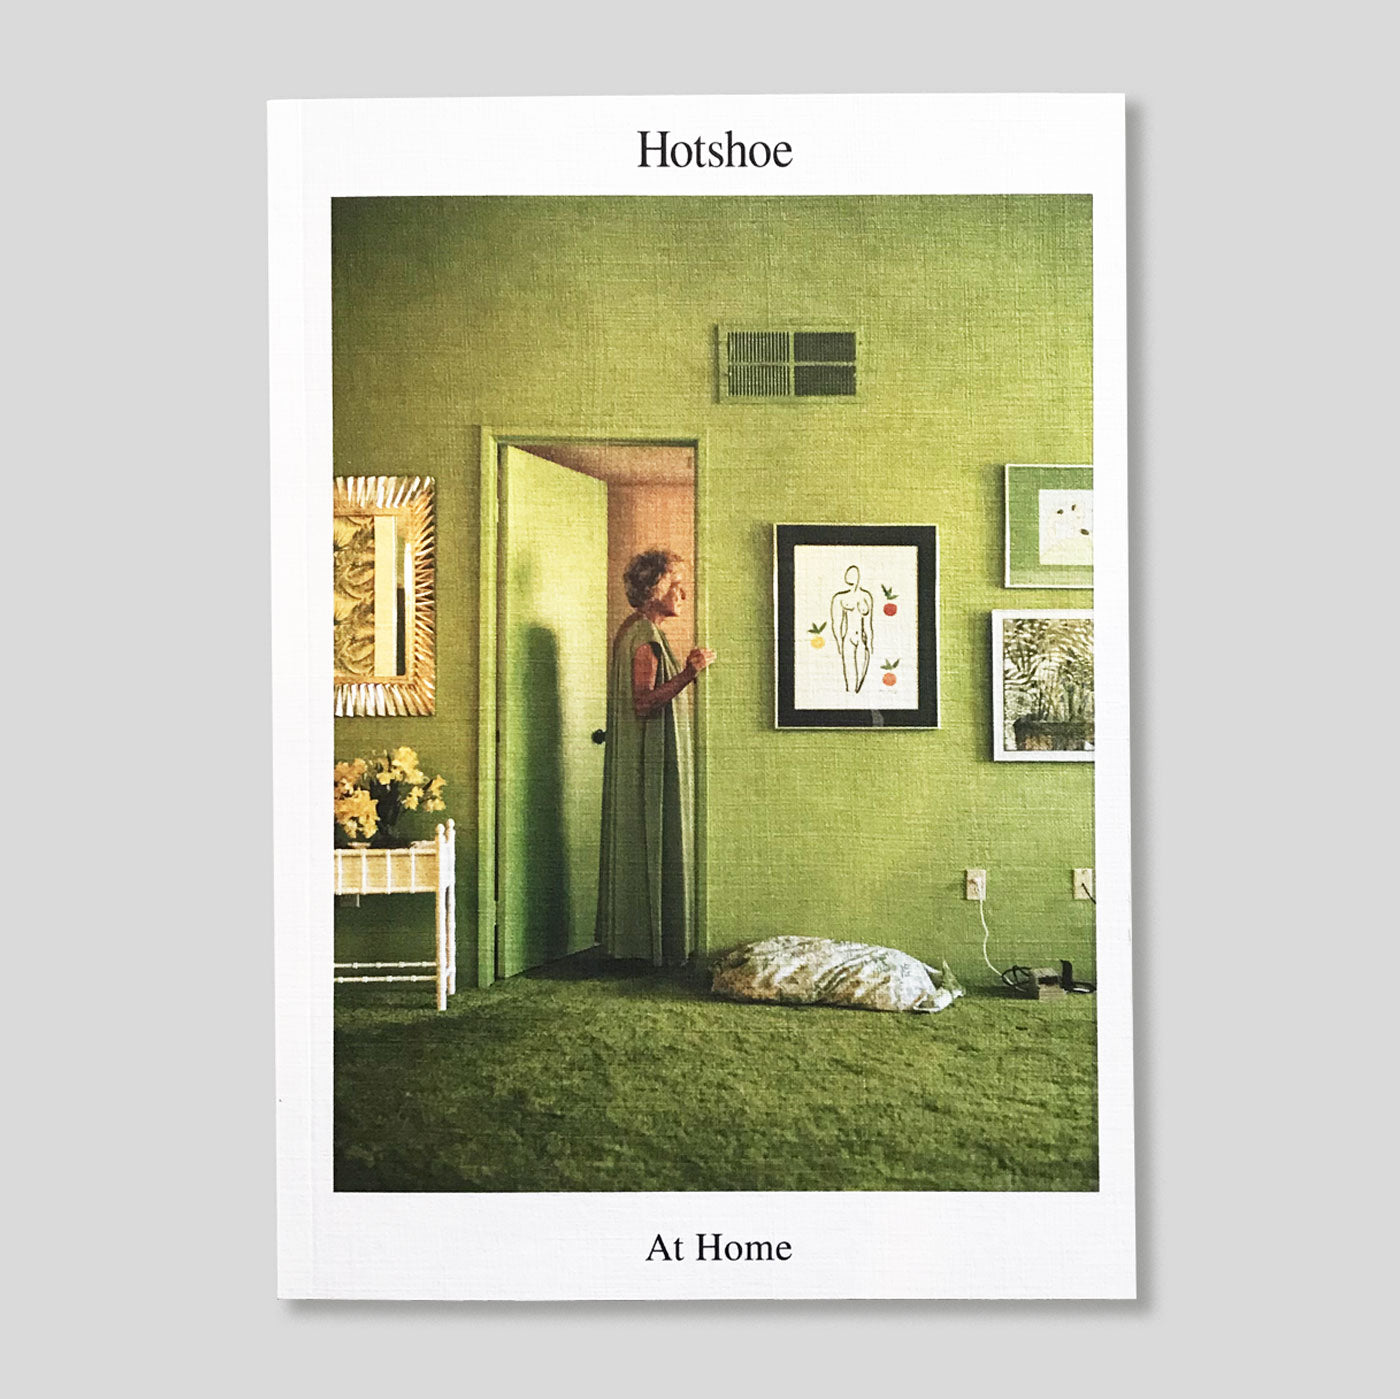 Hotshoe Magazine #205 | 'At Home' | Colours May Vary